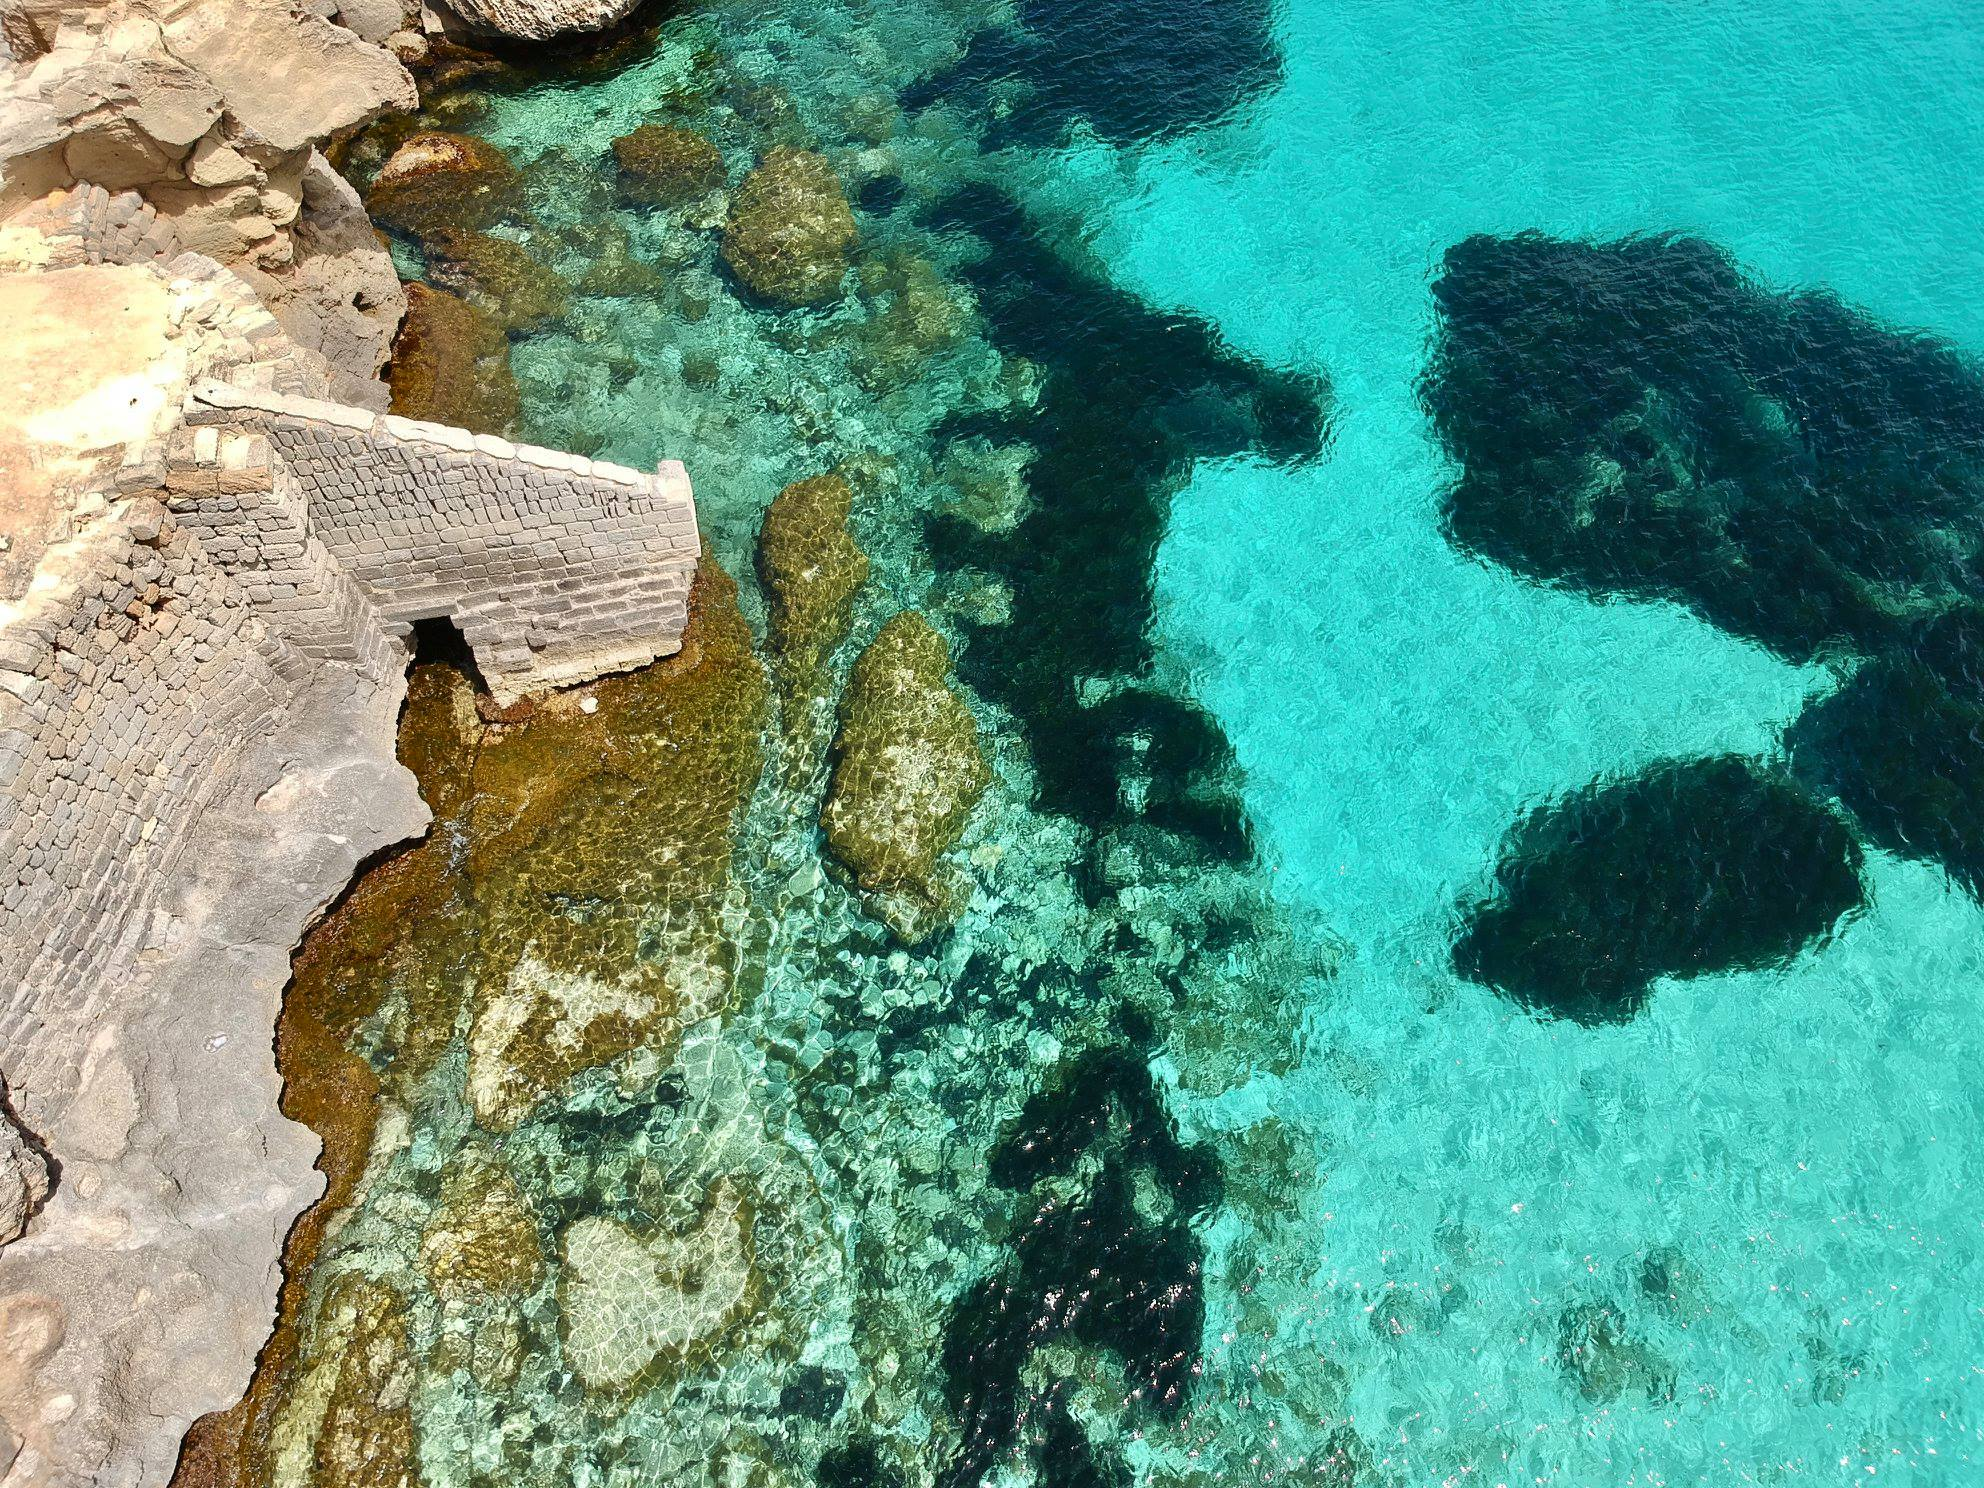 sicily ariel view of bright turqoise ocean